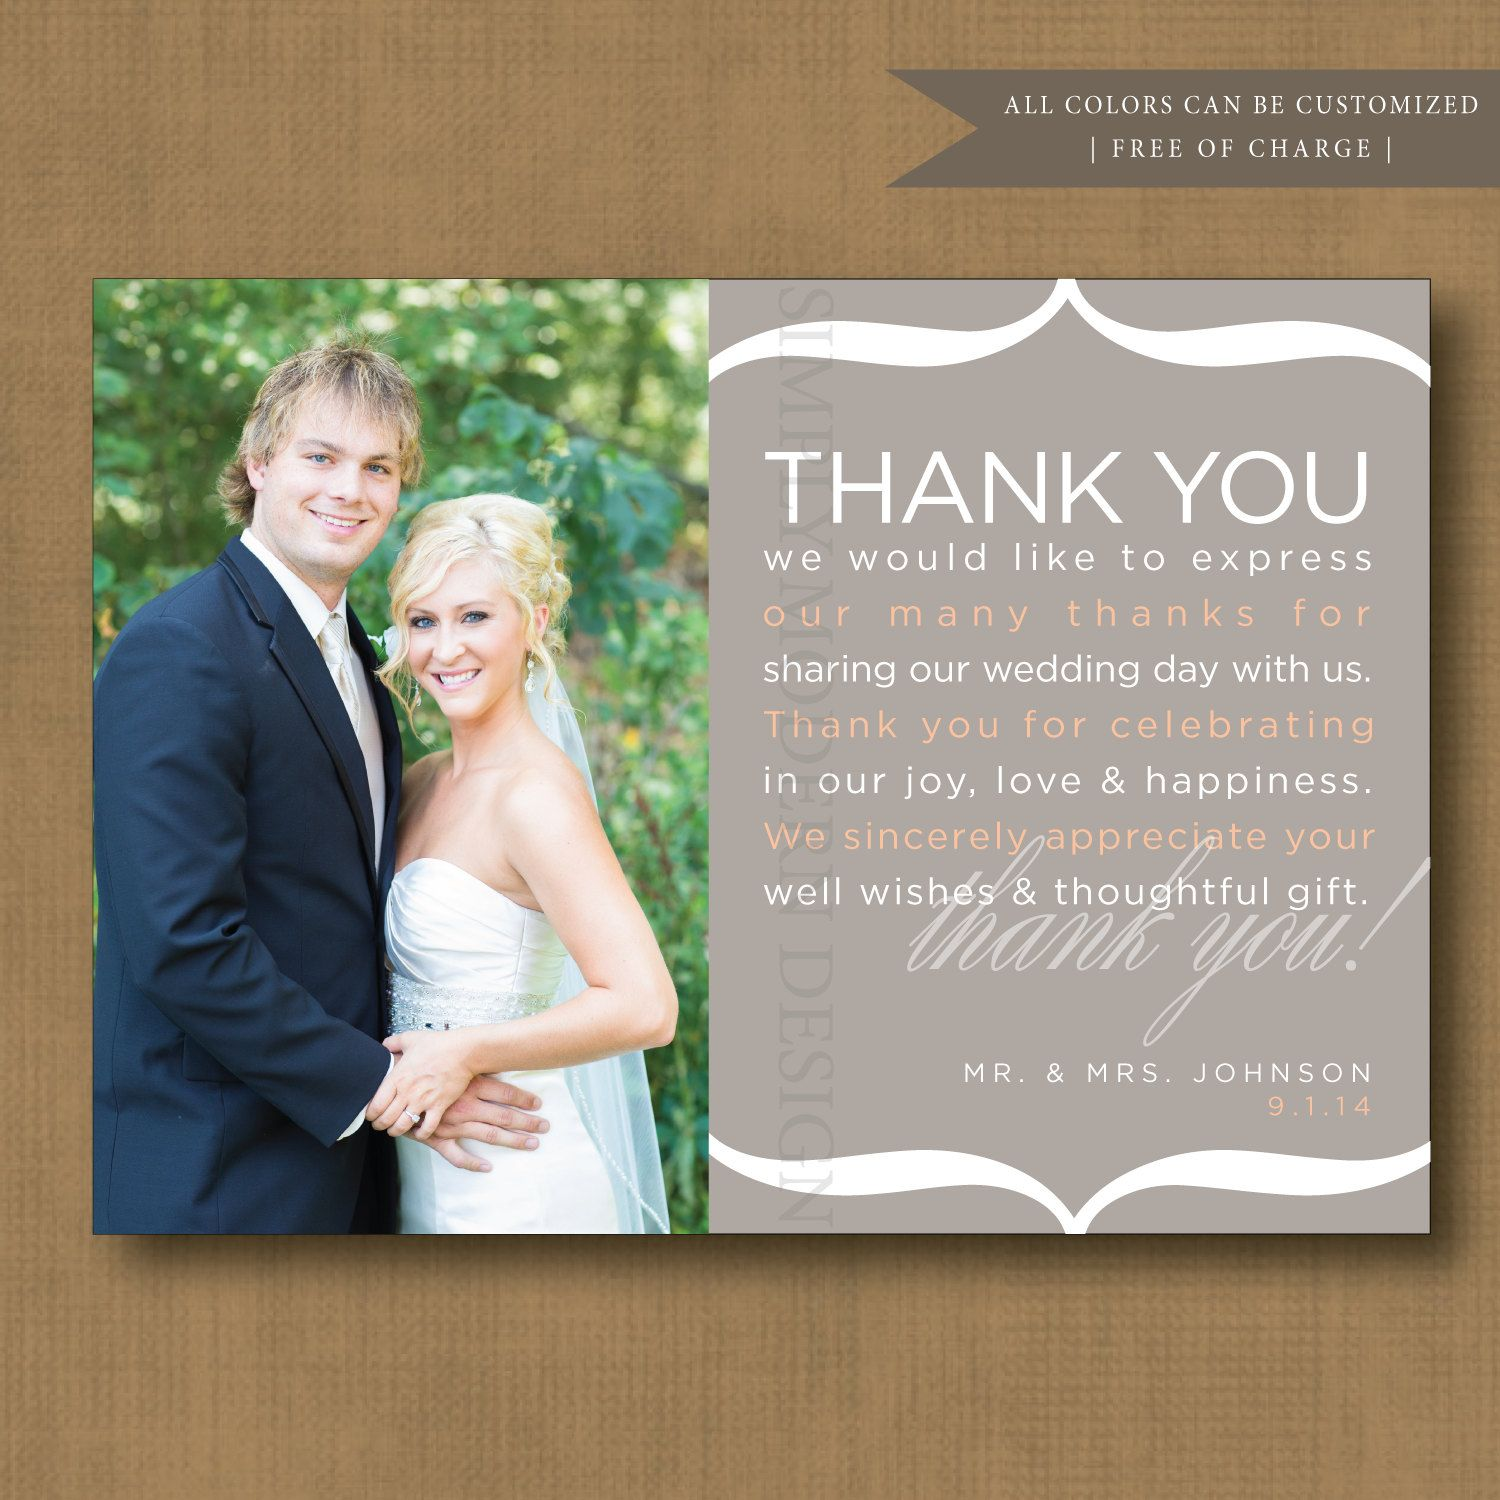 pre written thank you note wedding thank you card printable 1500 via etsy etsy wedding thankyou printable - Wedding Thank You Cards